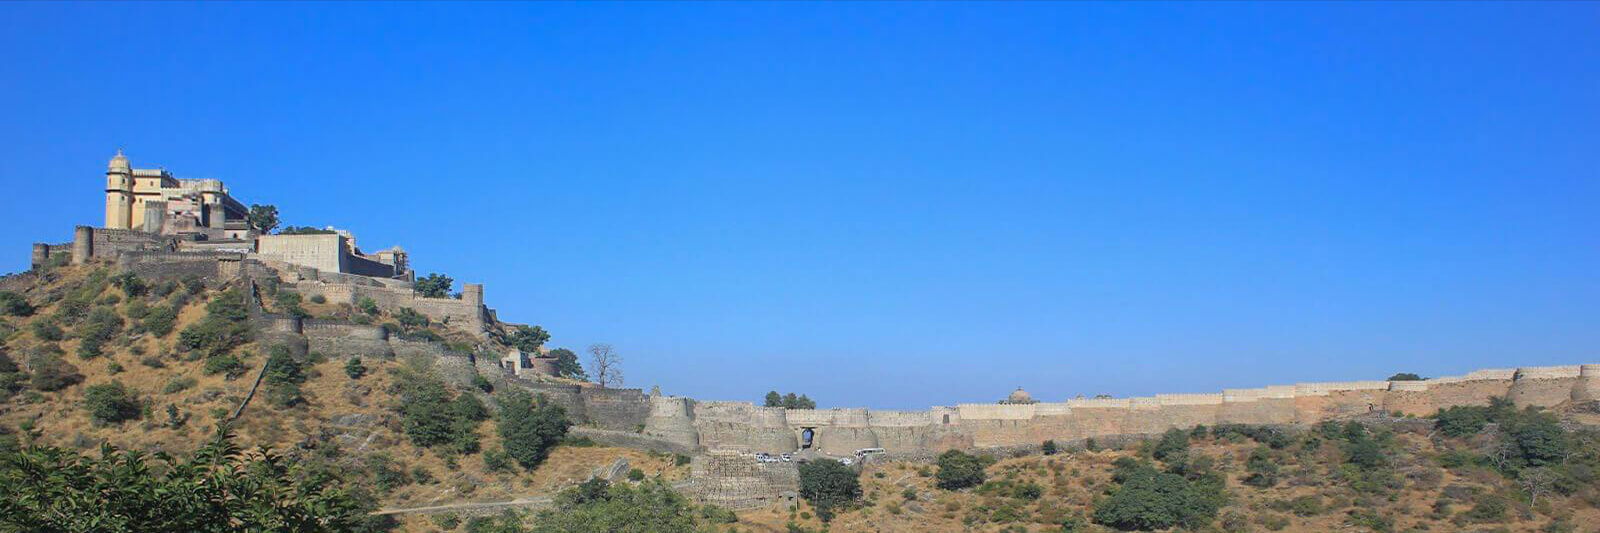 Kumbhalgarh Fort in Rajasthan, India